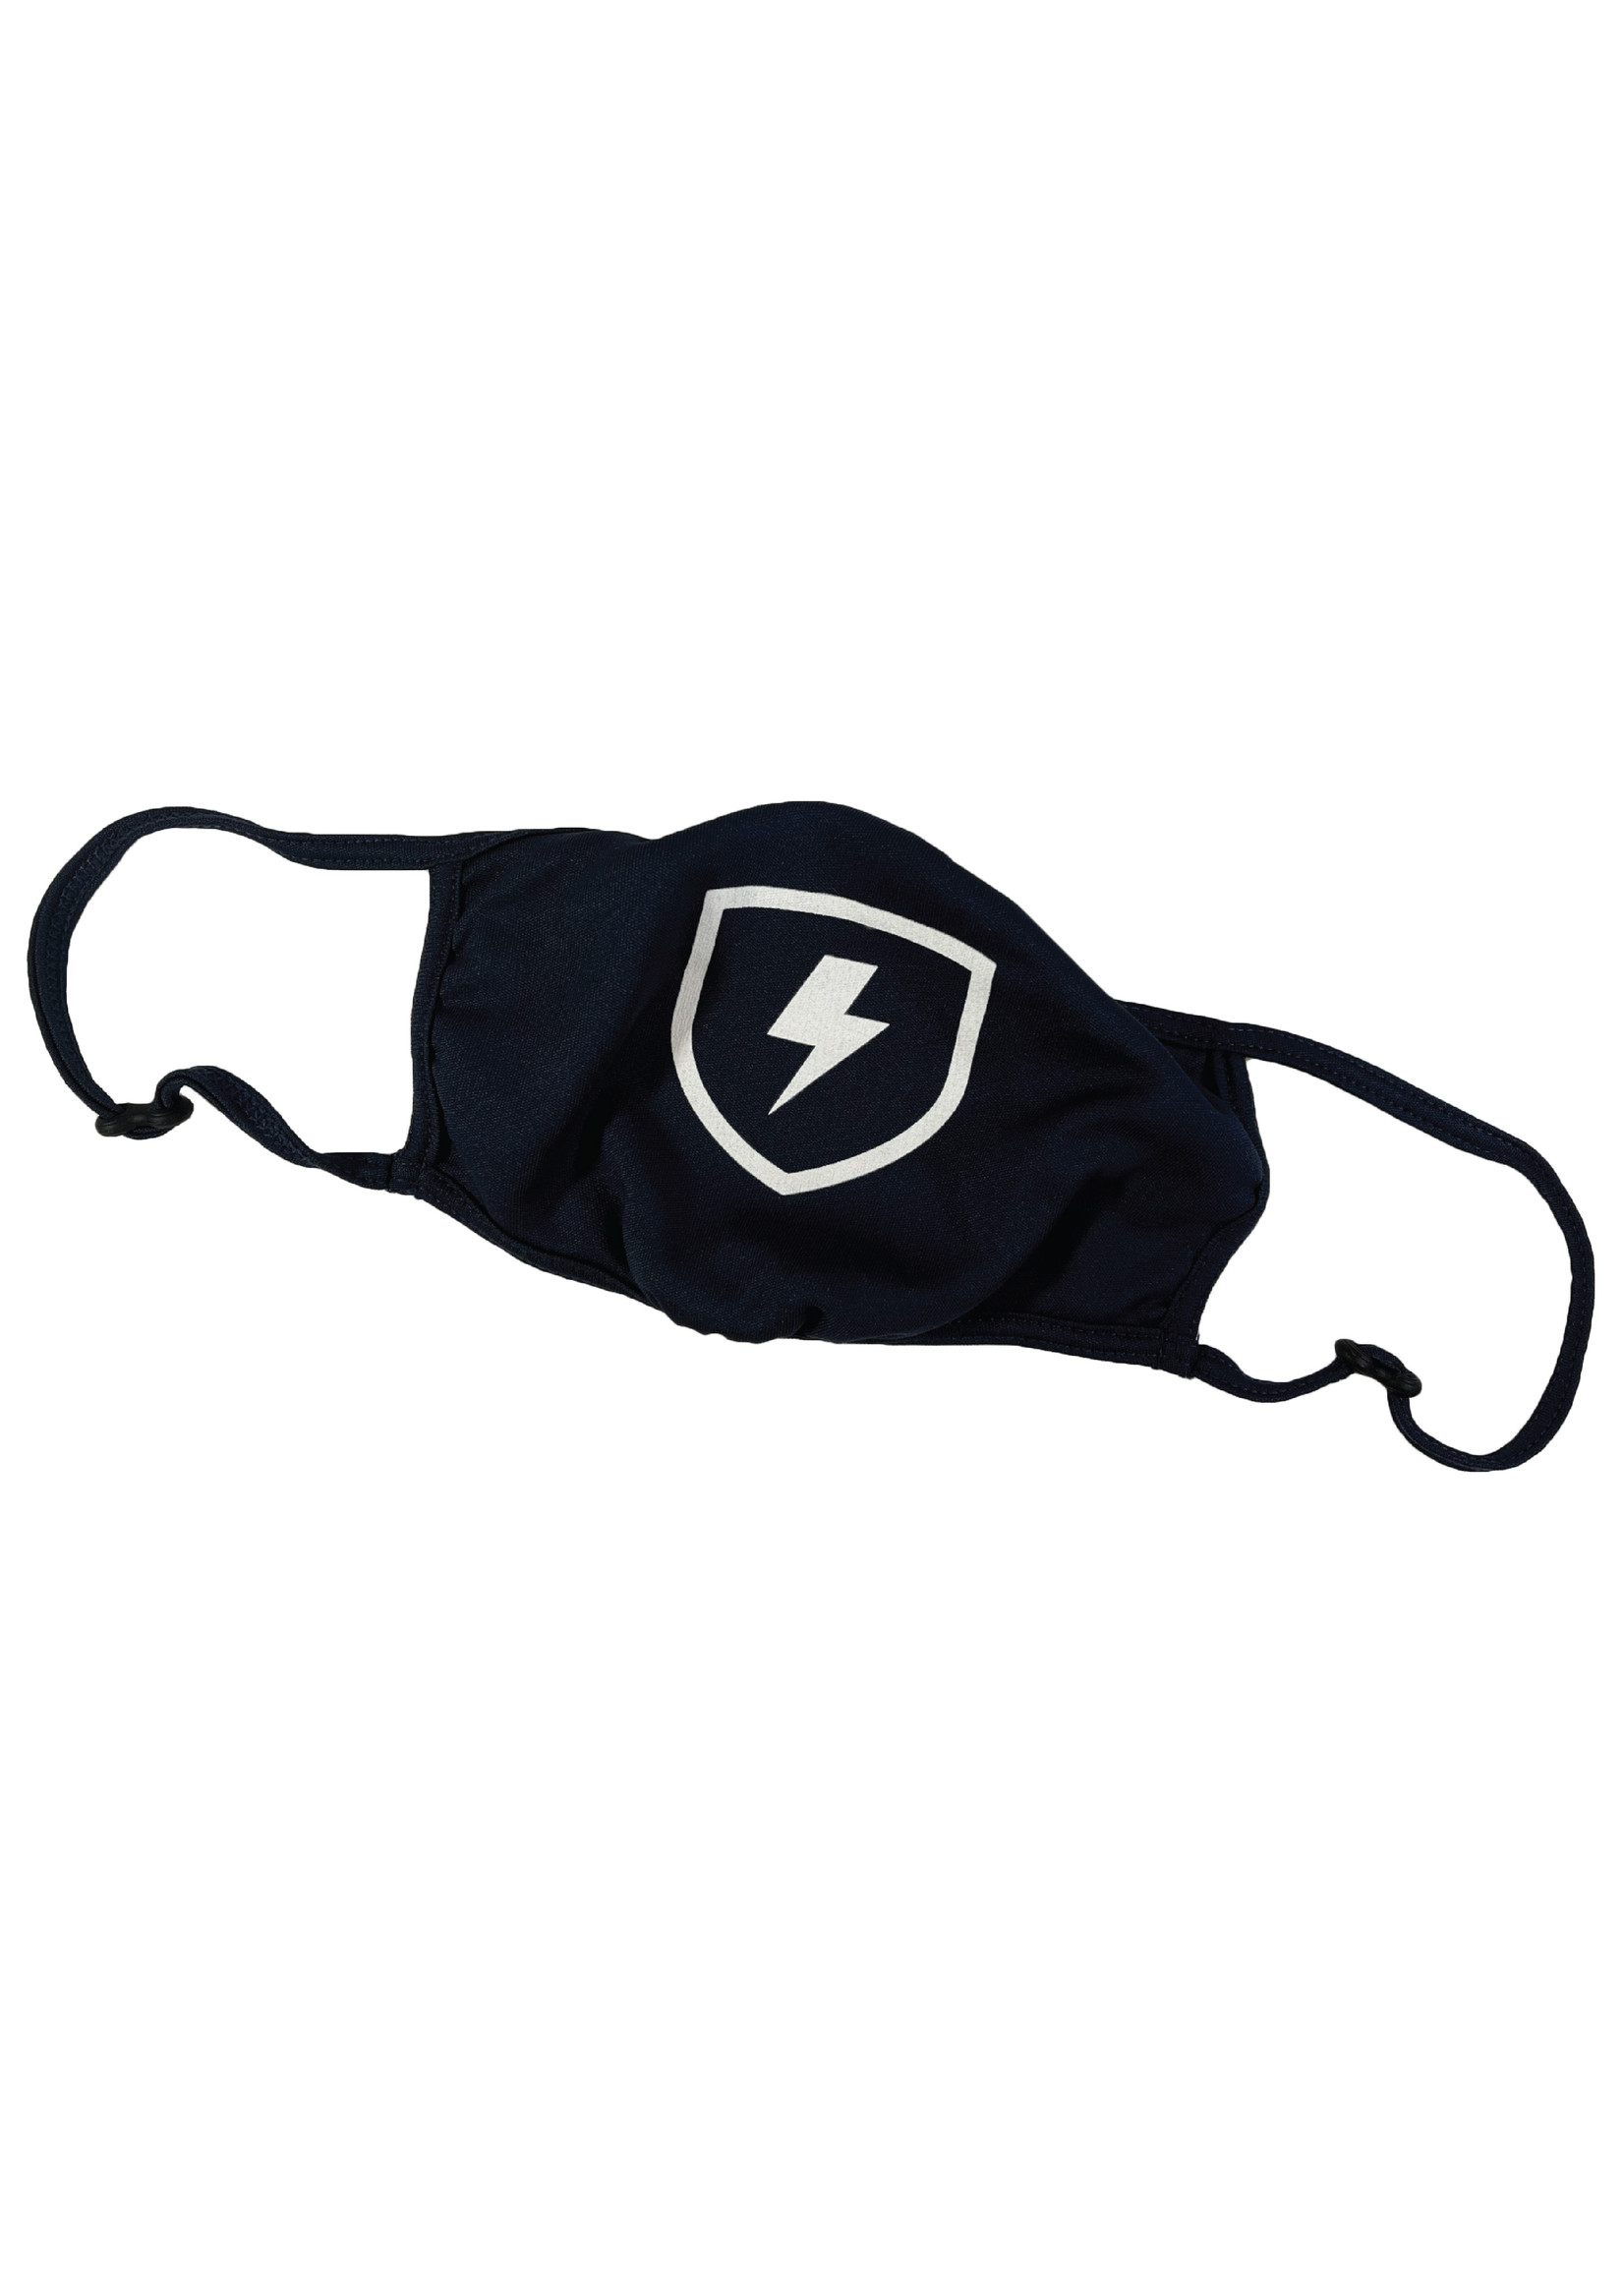 Defender Outdoors Face Mask